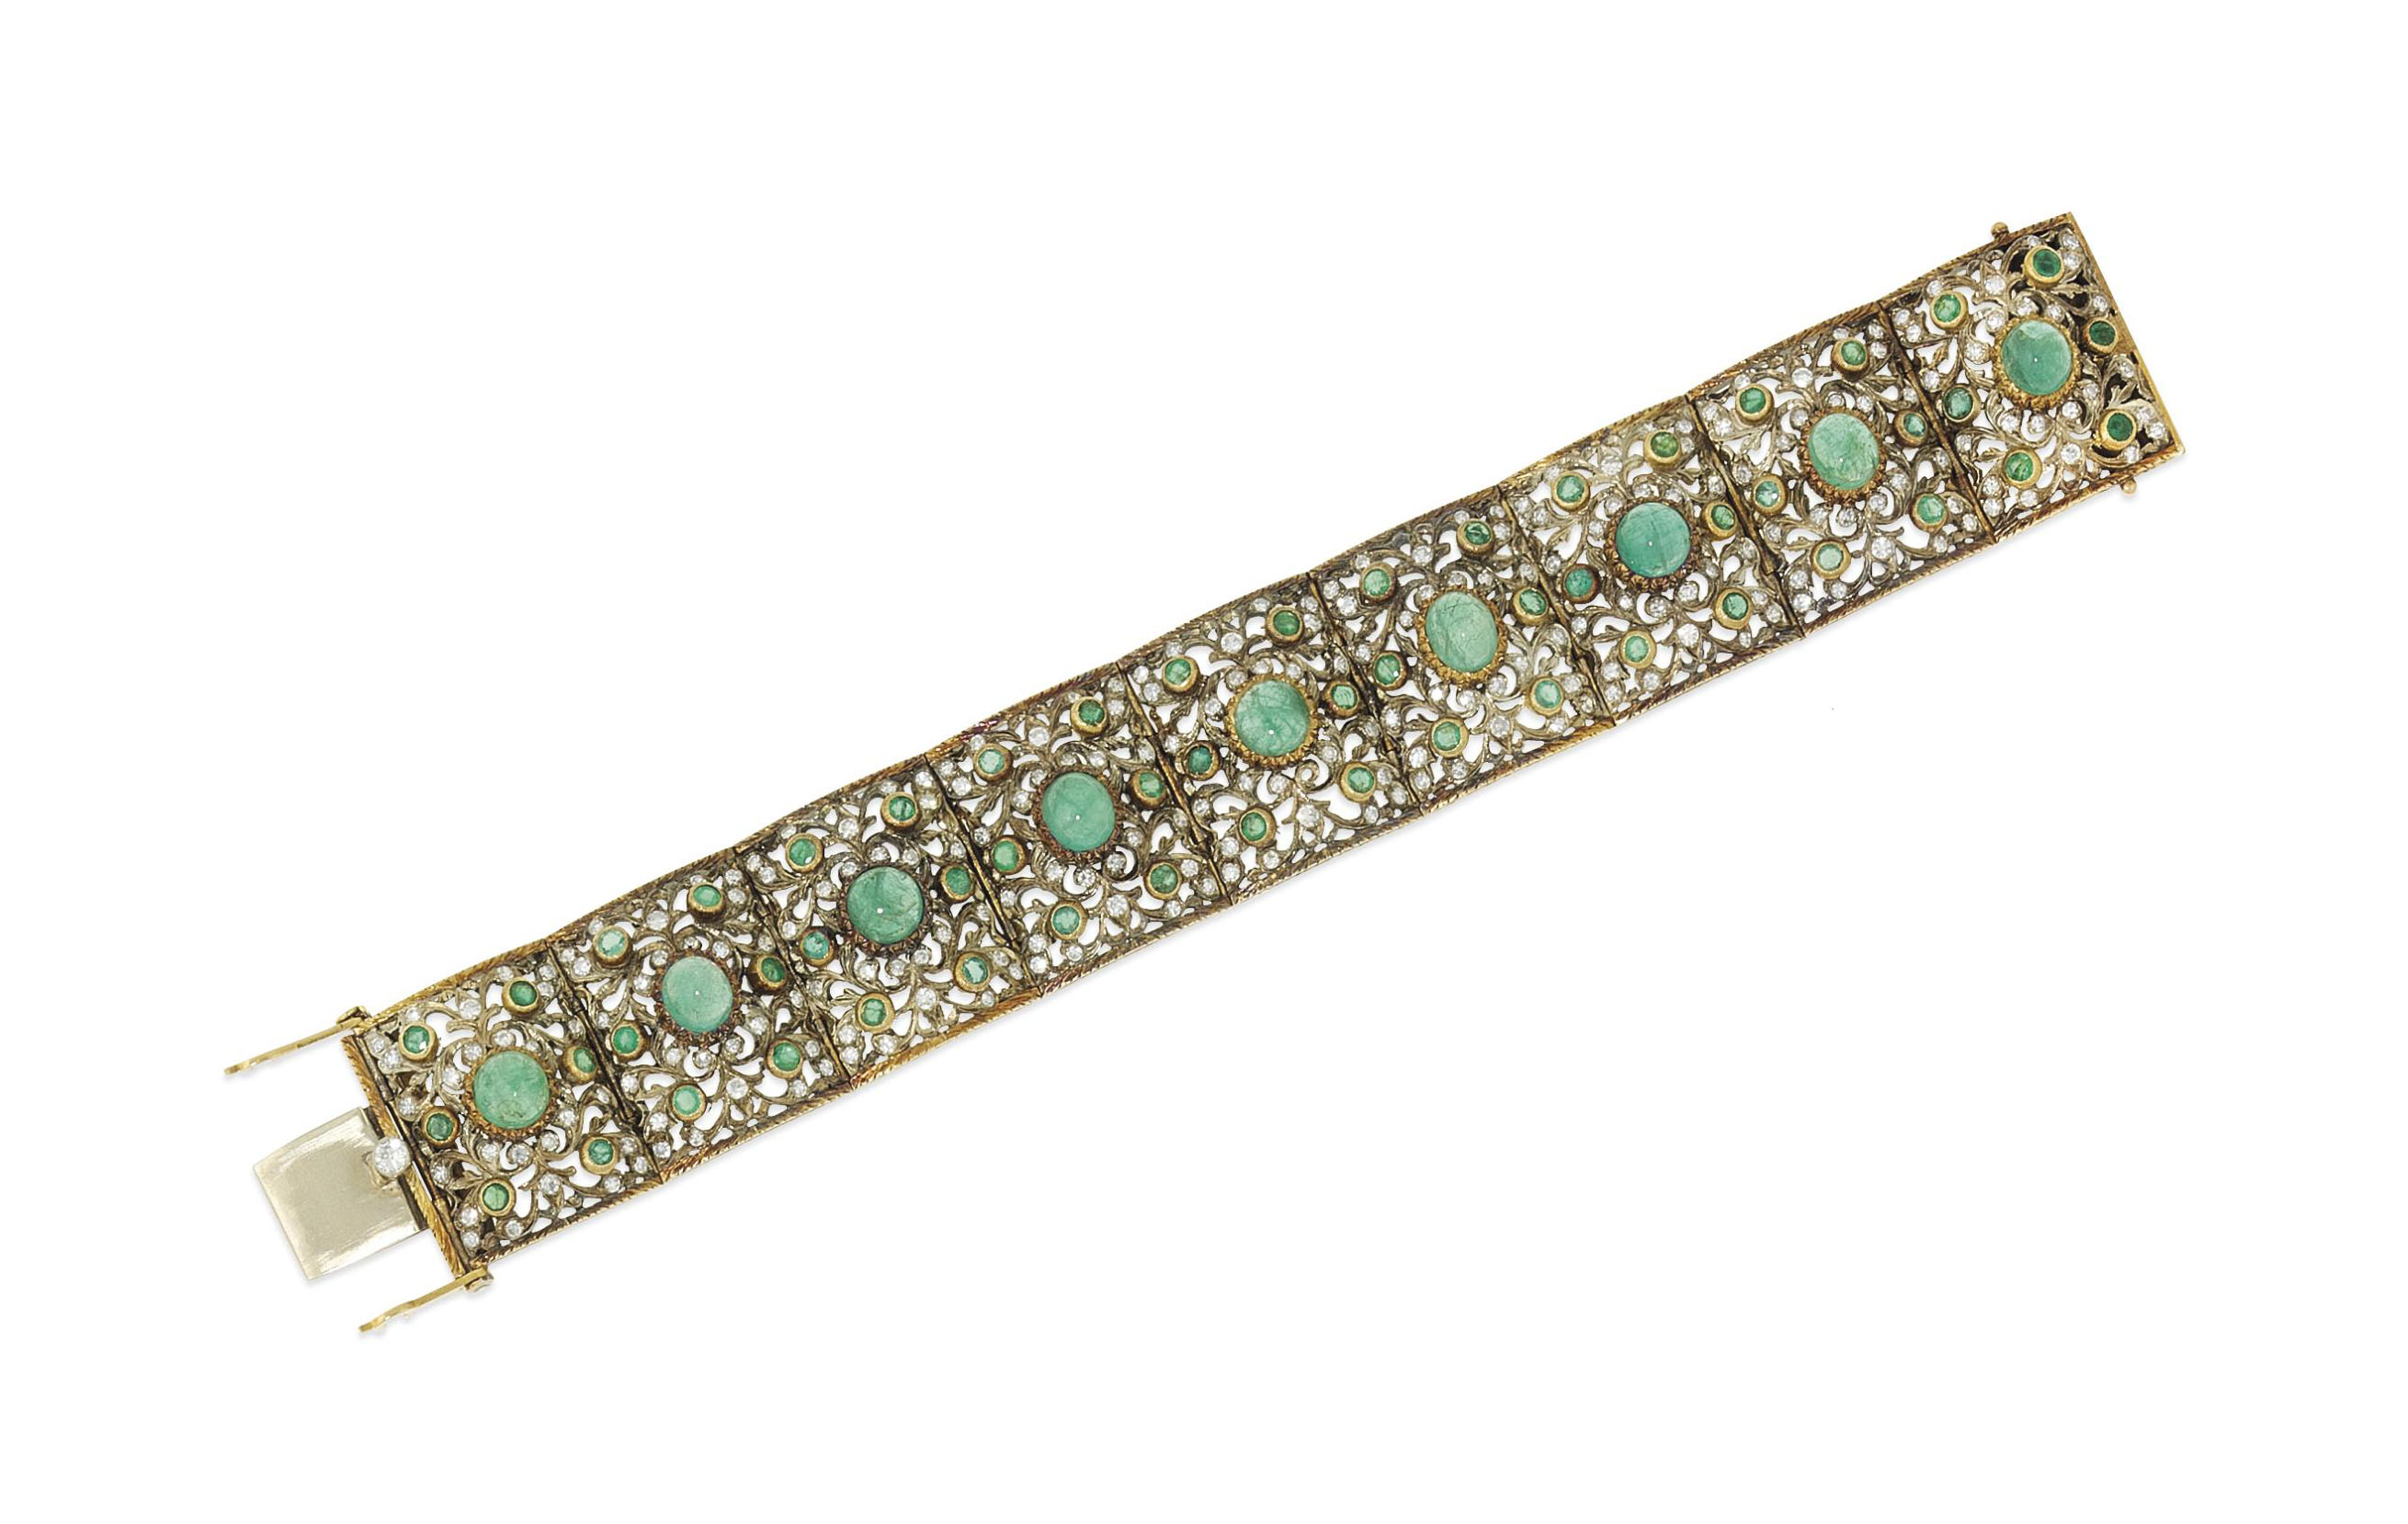 An emerald and diamond bracelet, by Fontana